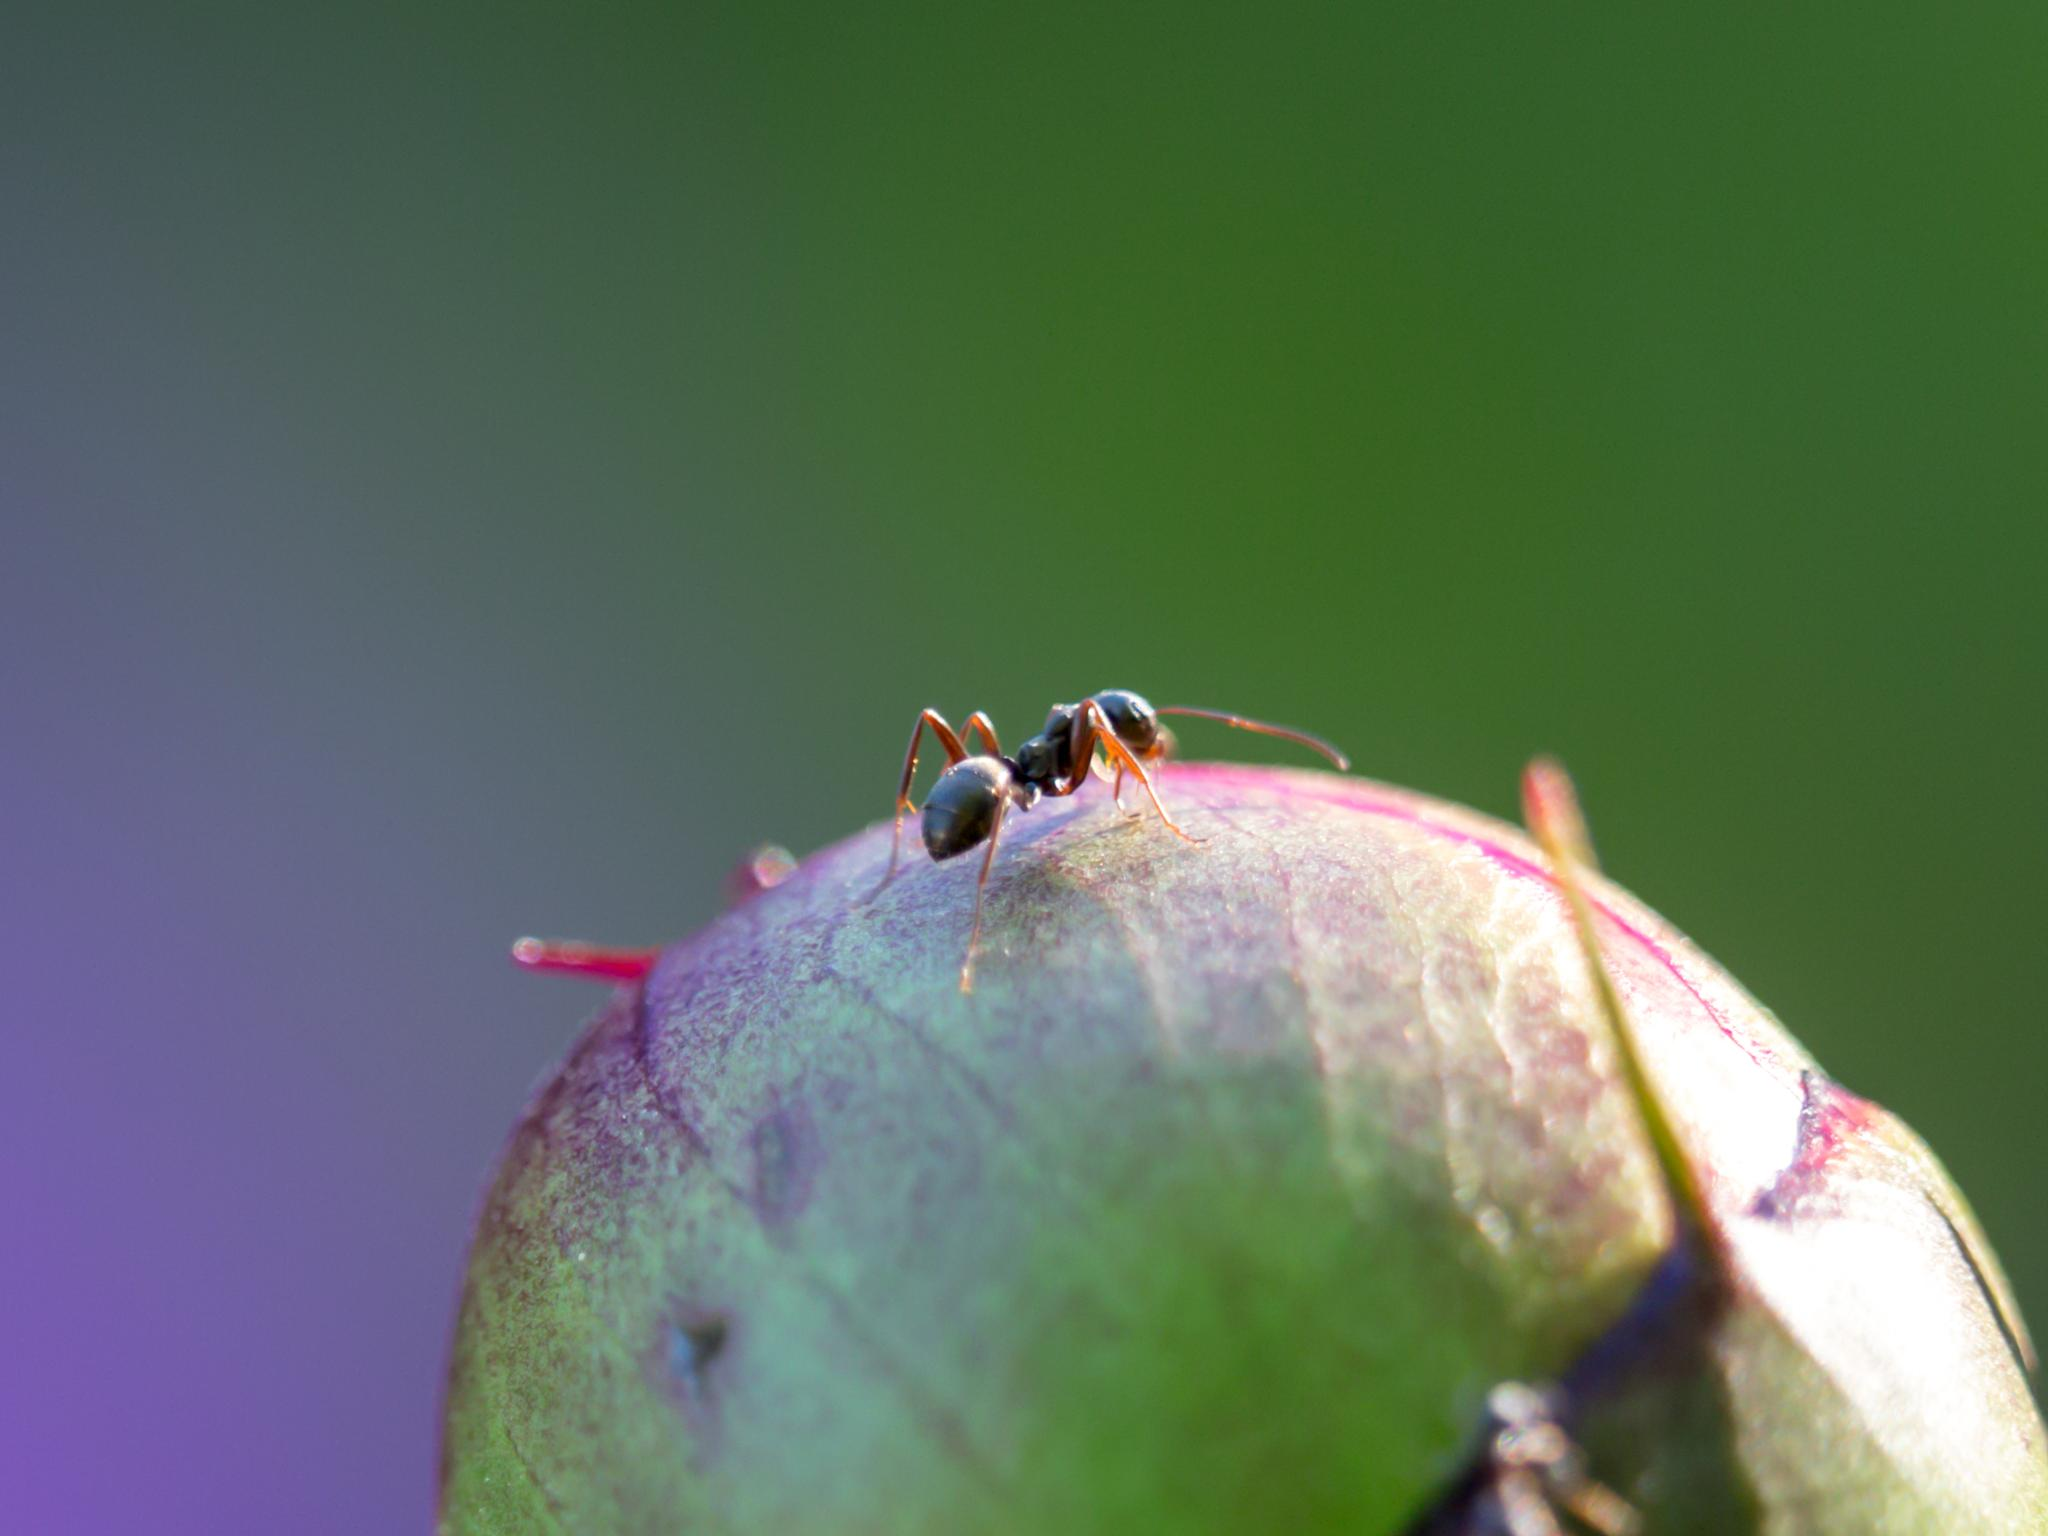 Ant and the Bud by Degerman